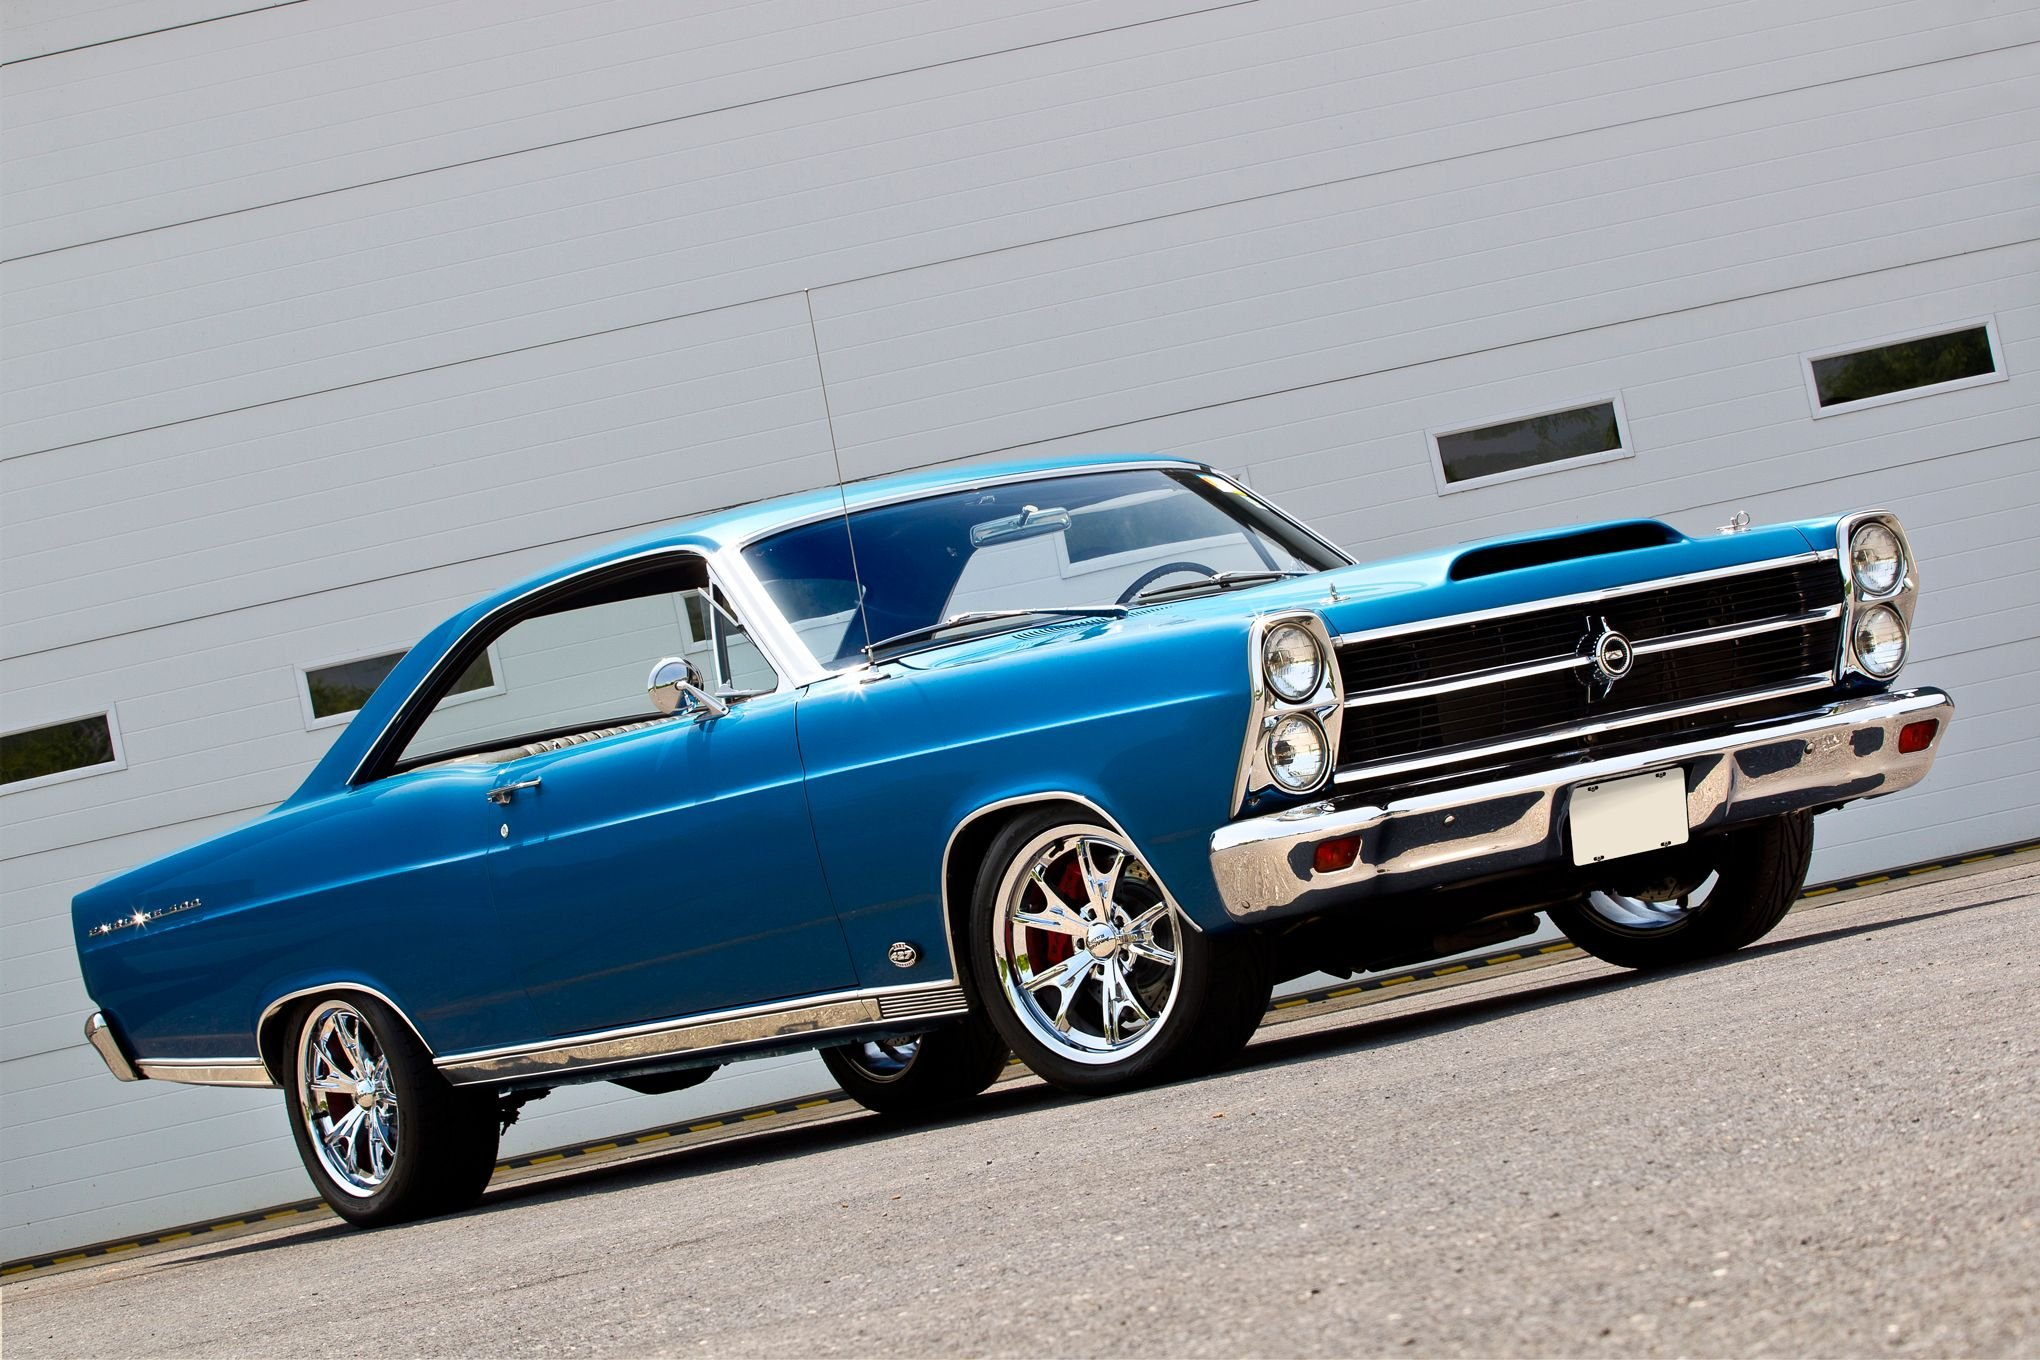 1967 ford fairlane 500 coupe hardtop streetrod street rod hot cruiser usa 02 wallpaper. Black Bedroom Furniture Sets. Home Design Ideas